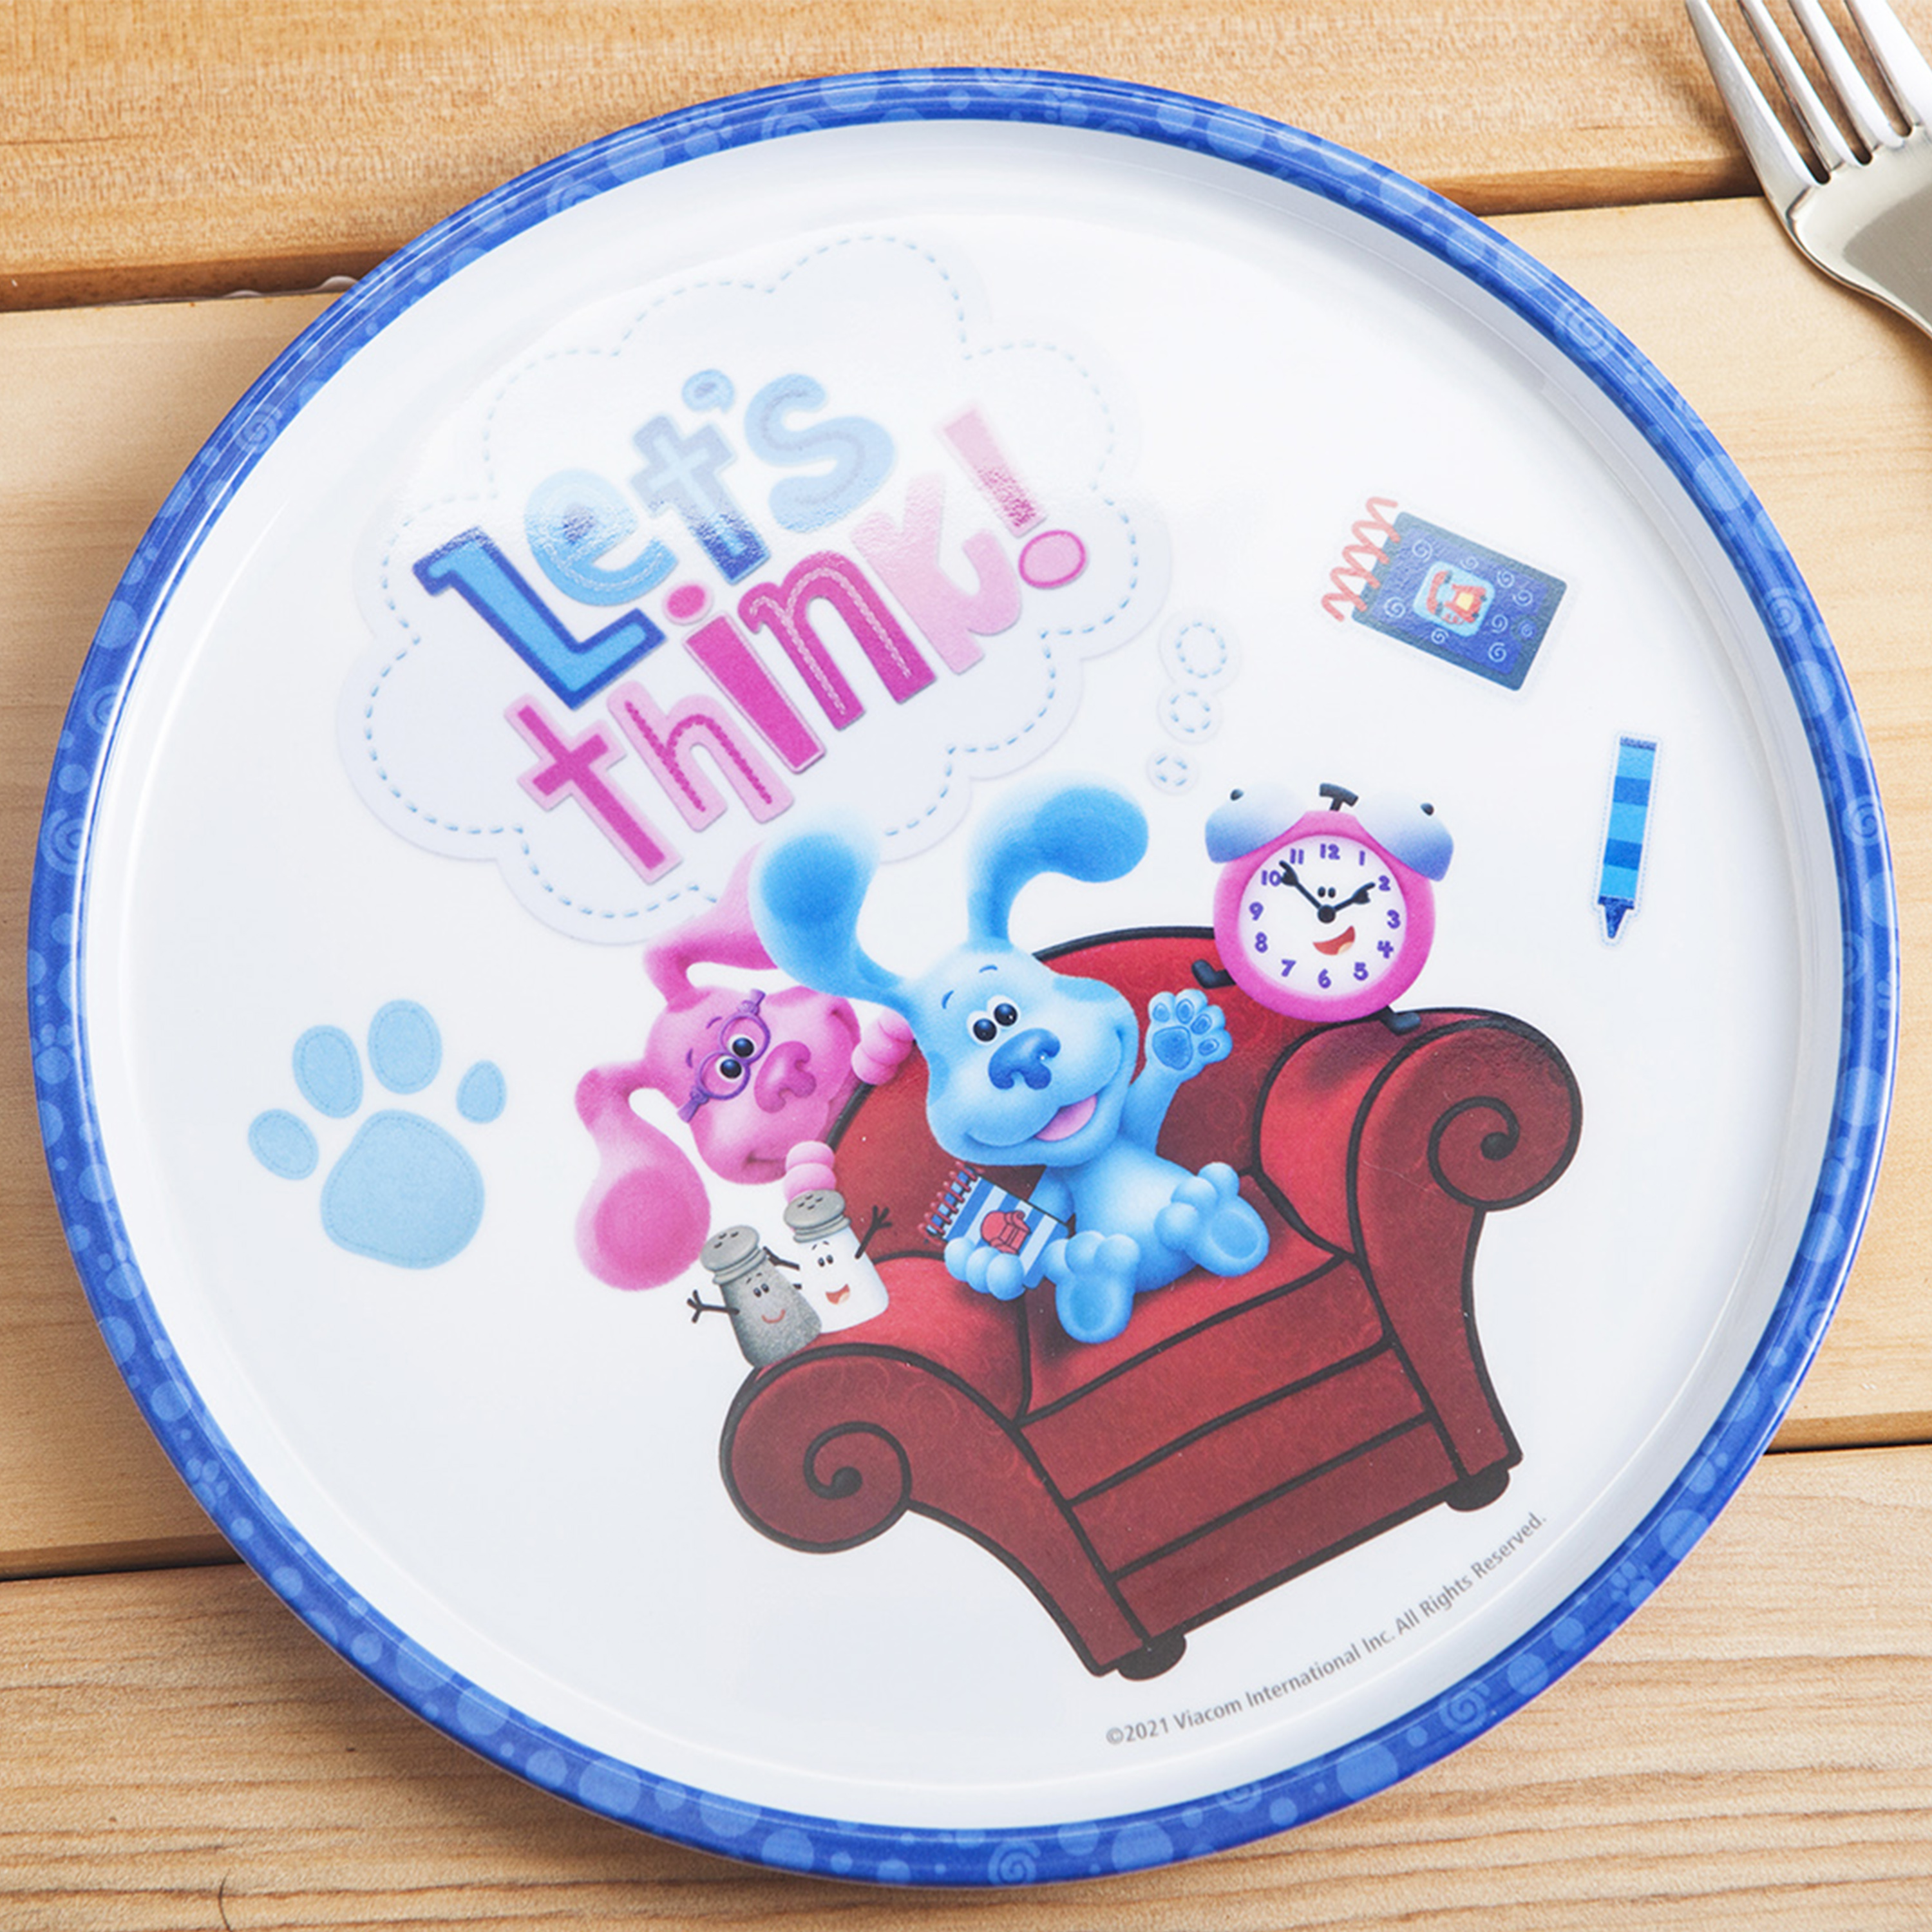 Blues Clues and You Kids Dinner Set, Blue and Friends, 5-piece set slideshow image 9